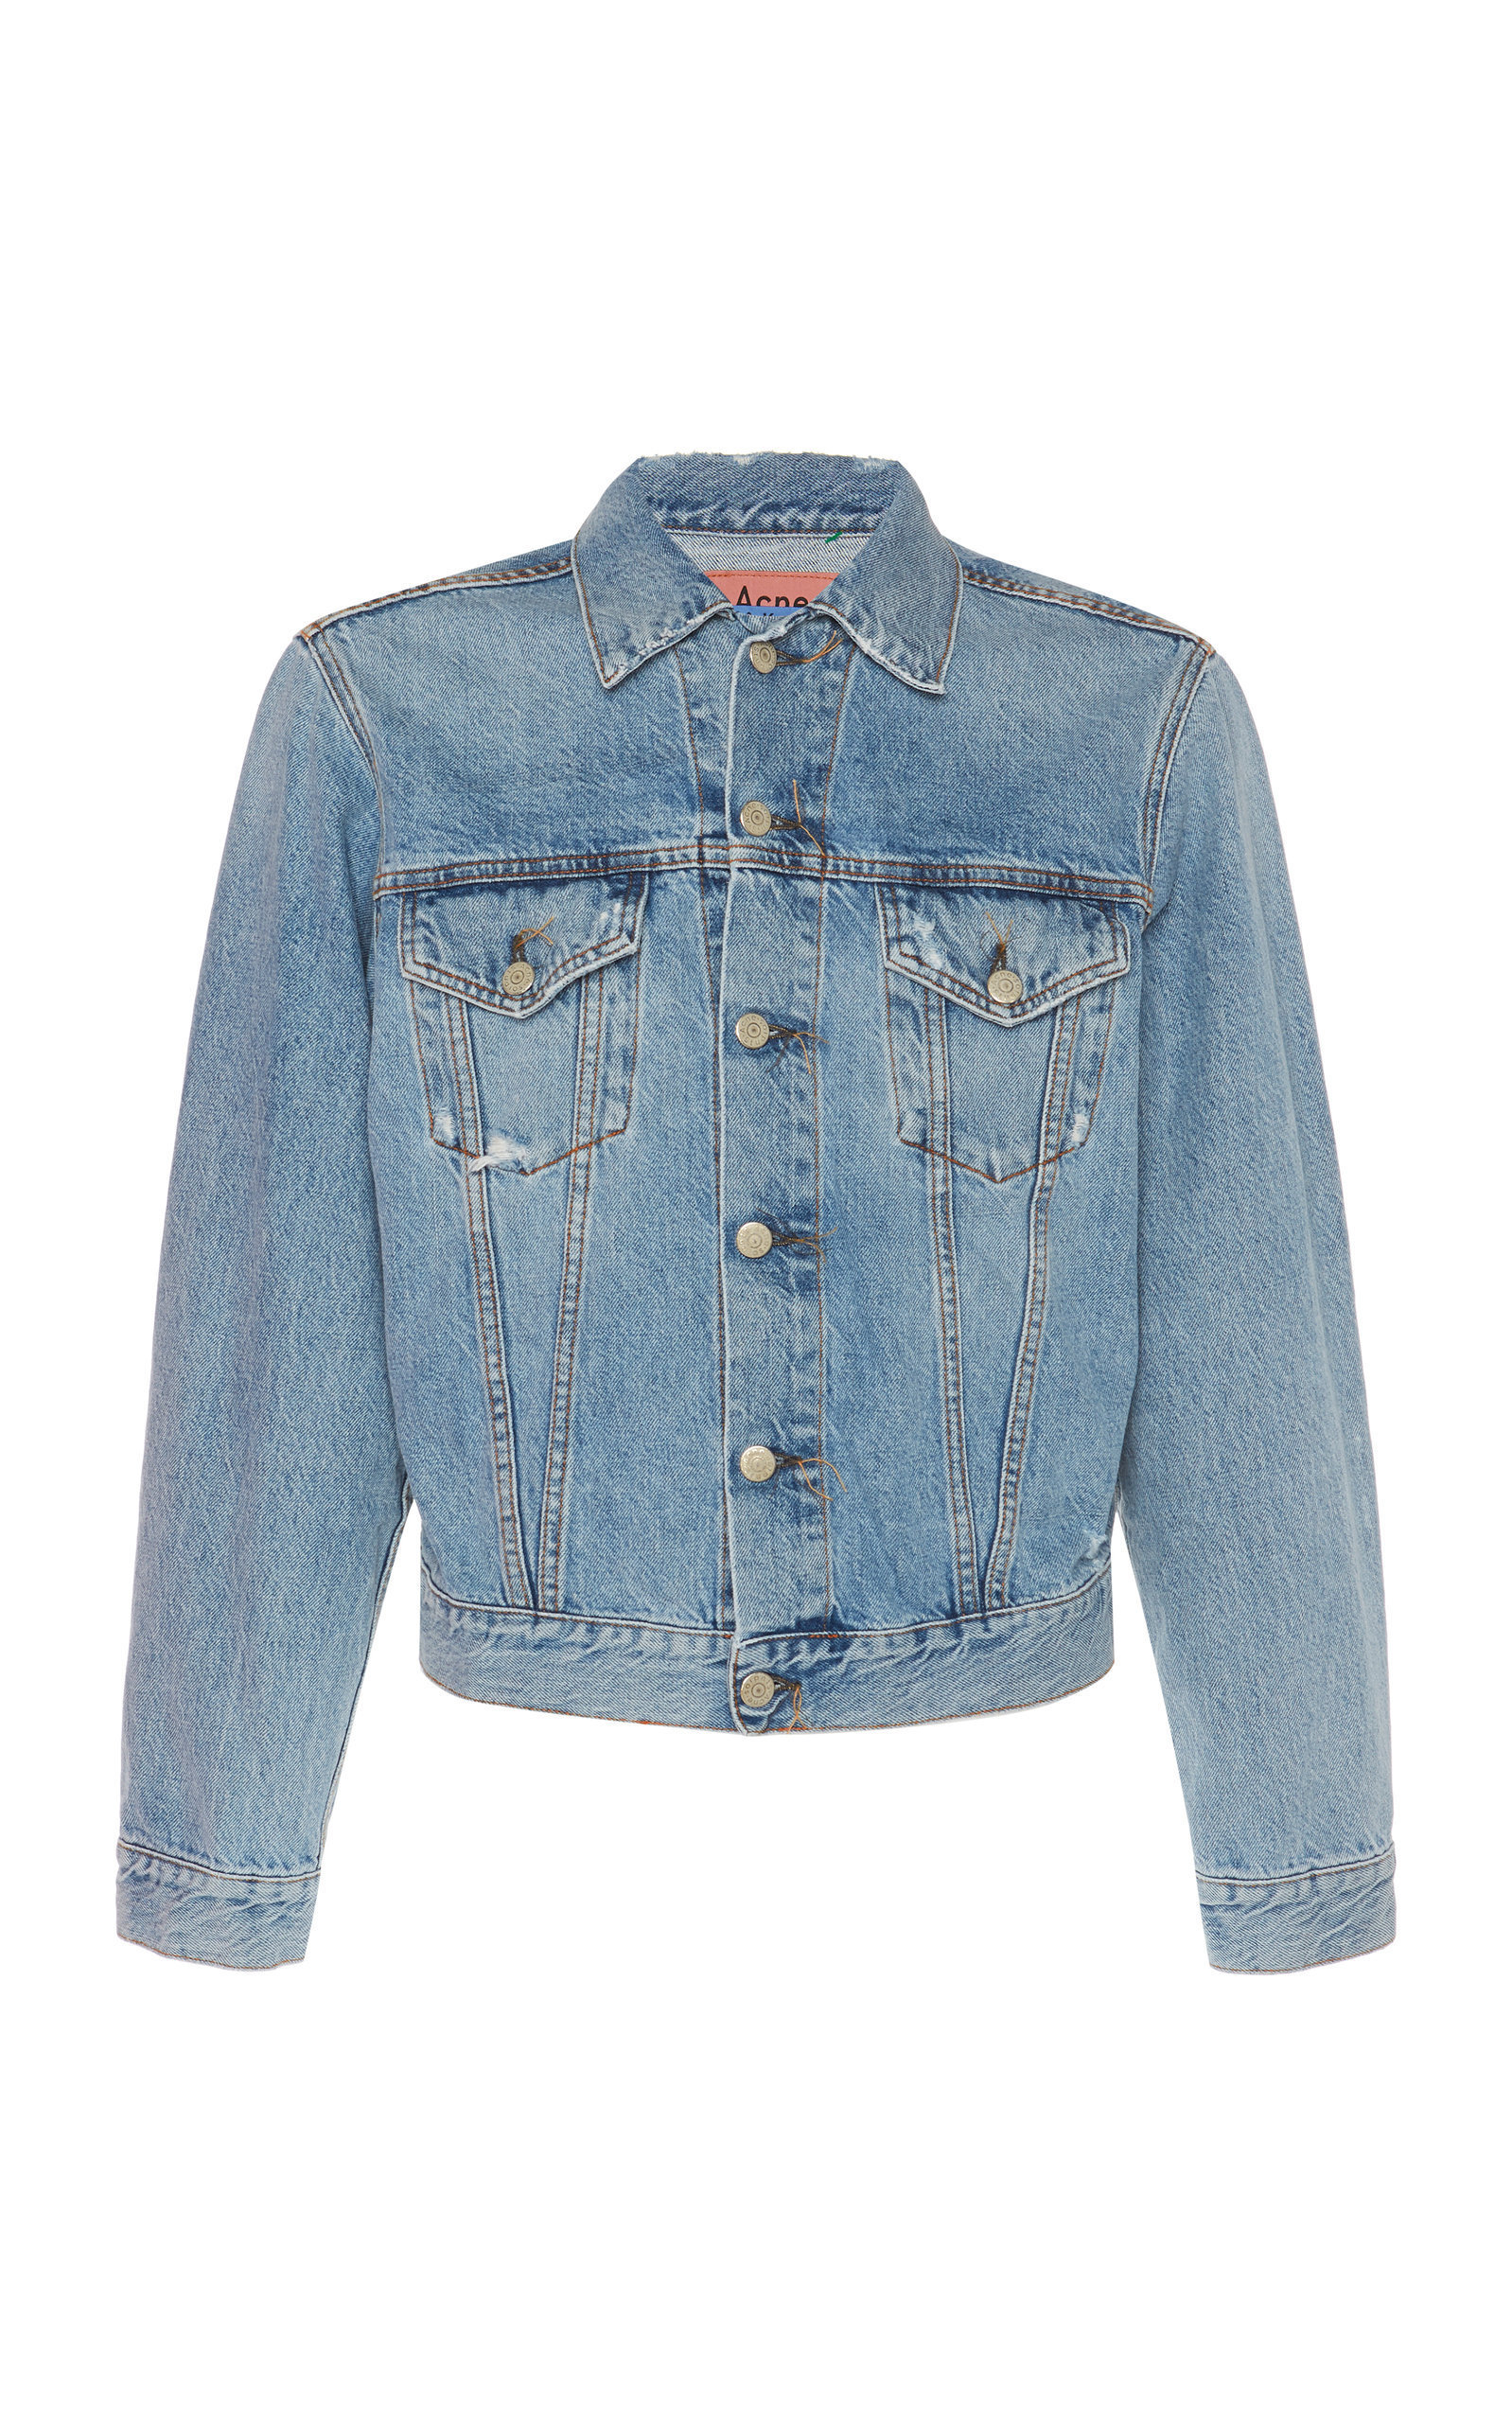 Acne Studios Distressed Denim Trucker Jacket In Light Blue